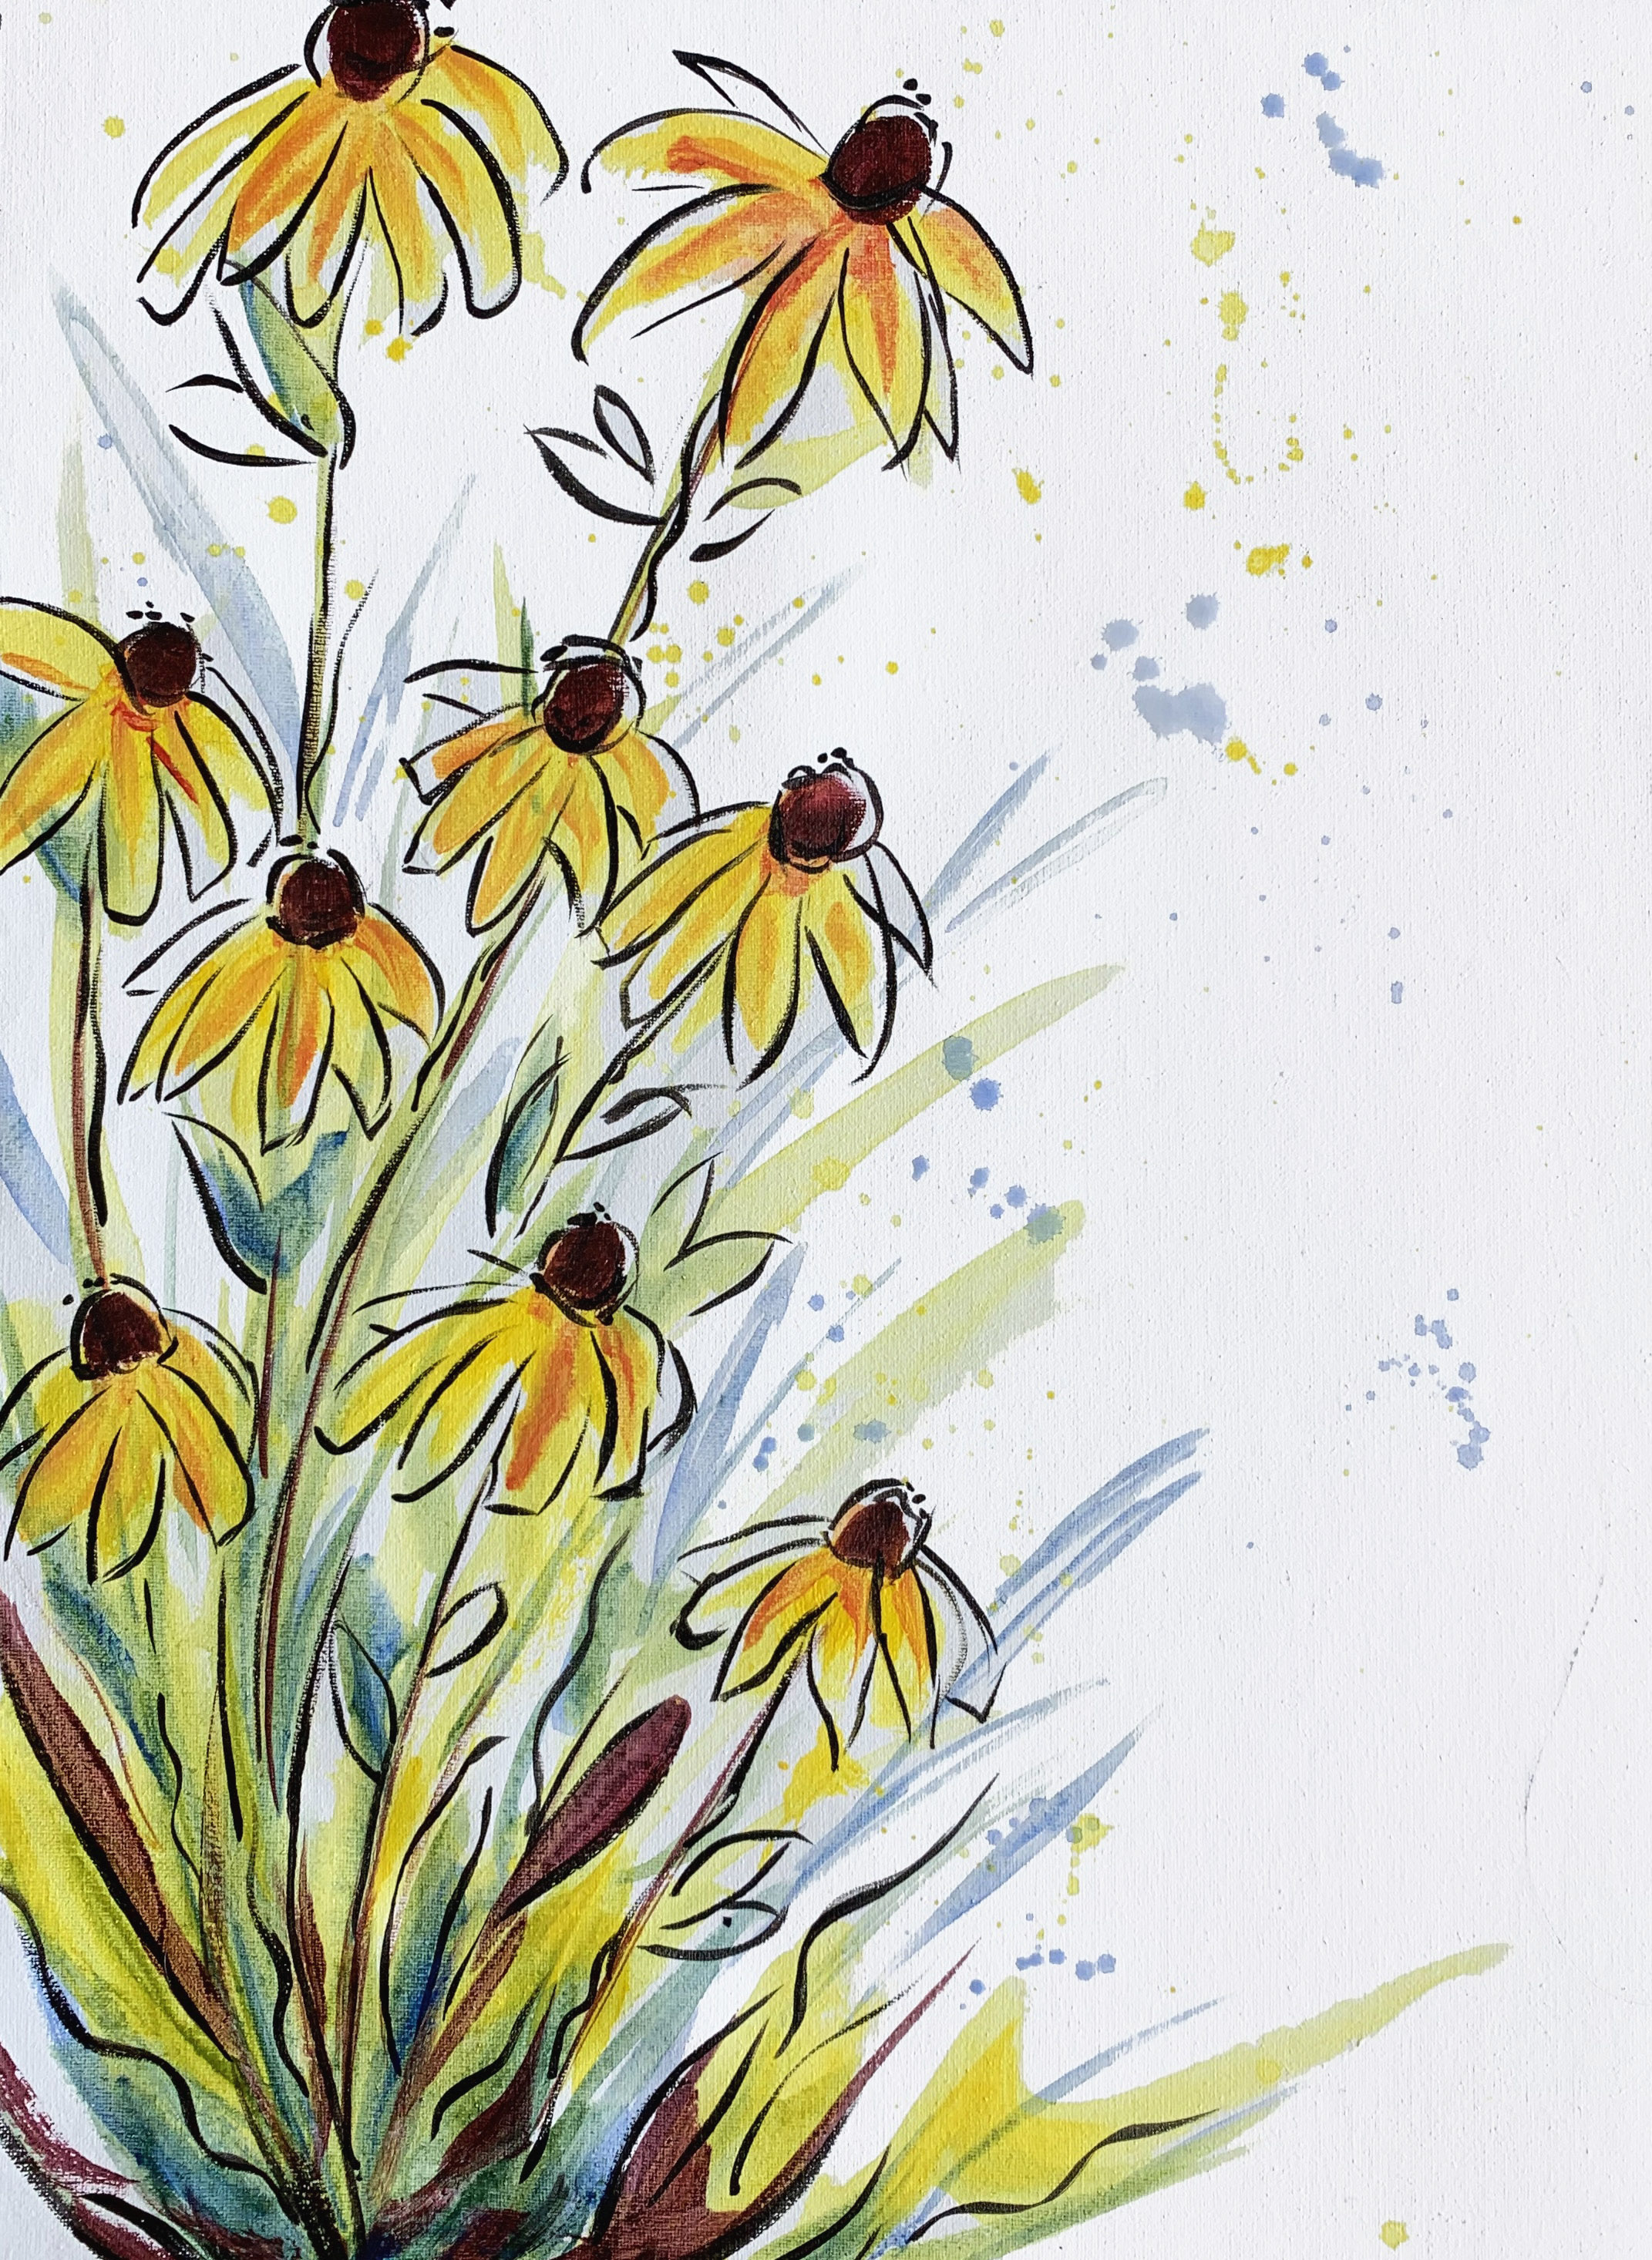 A Blooming Cone Flowers experience project by Yaymaker